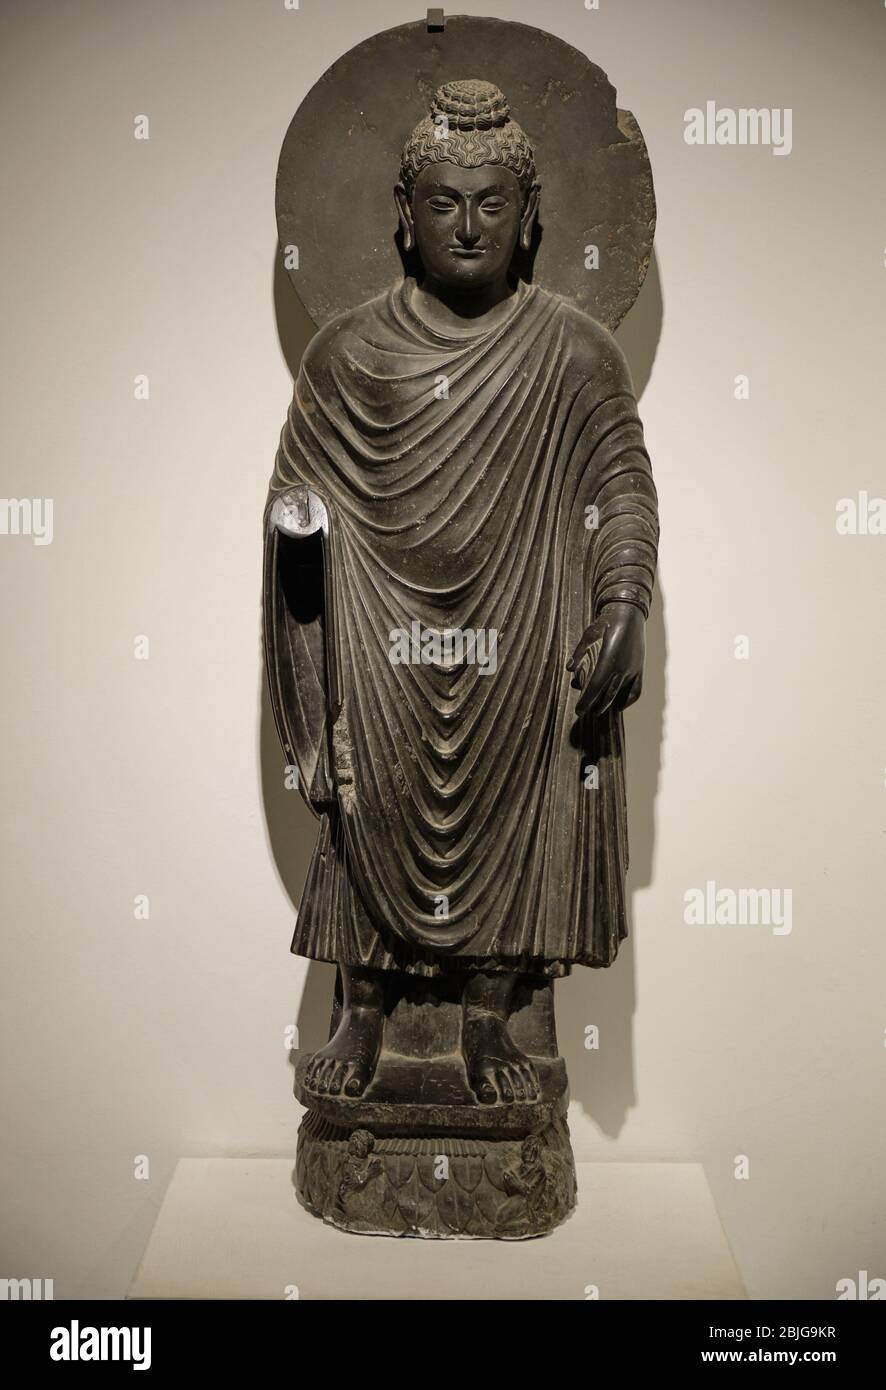 New Delhi India September 26 2019 2nd Century Greco Buddhist Statue Of Standing Buddha From Gandhara In The National Museum Of India In New Del Stock Photo Alamy